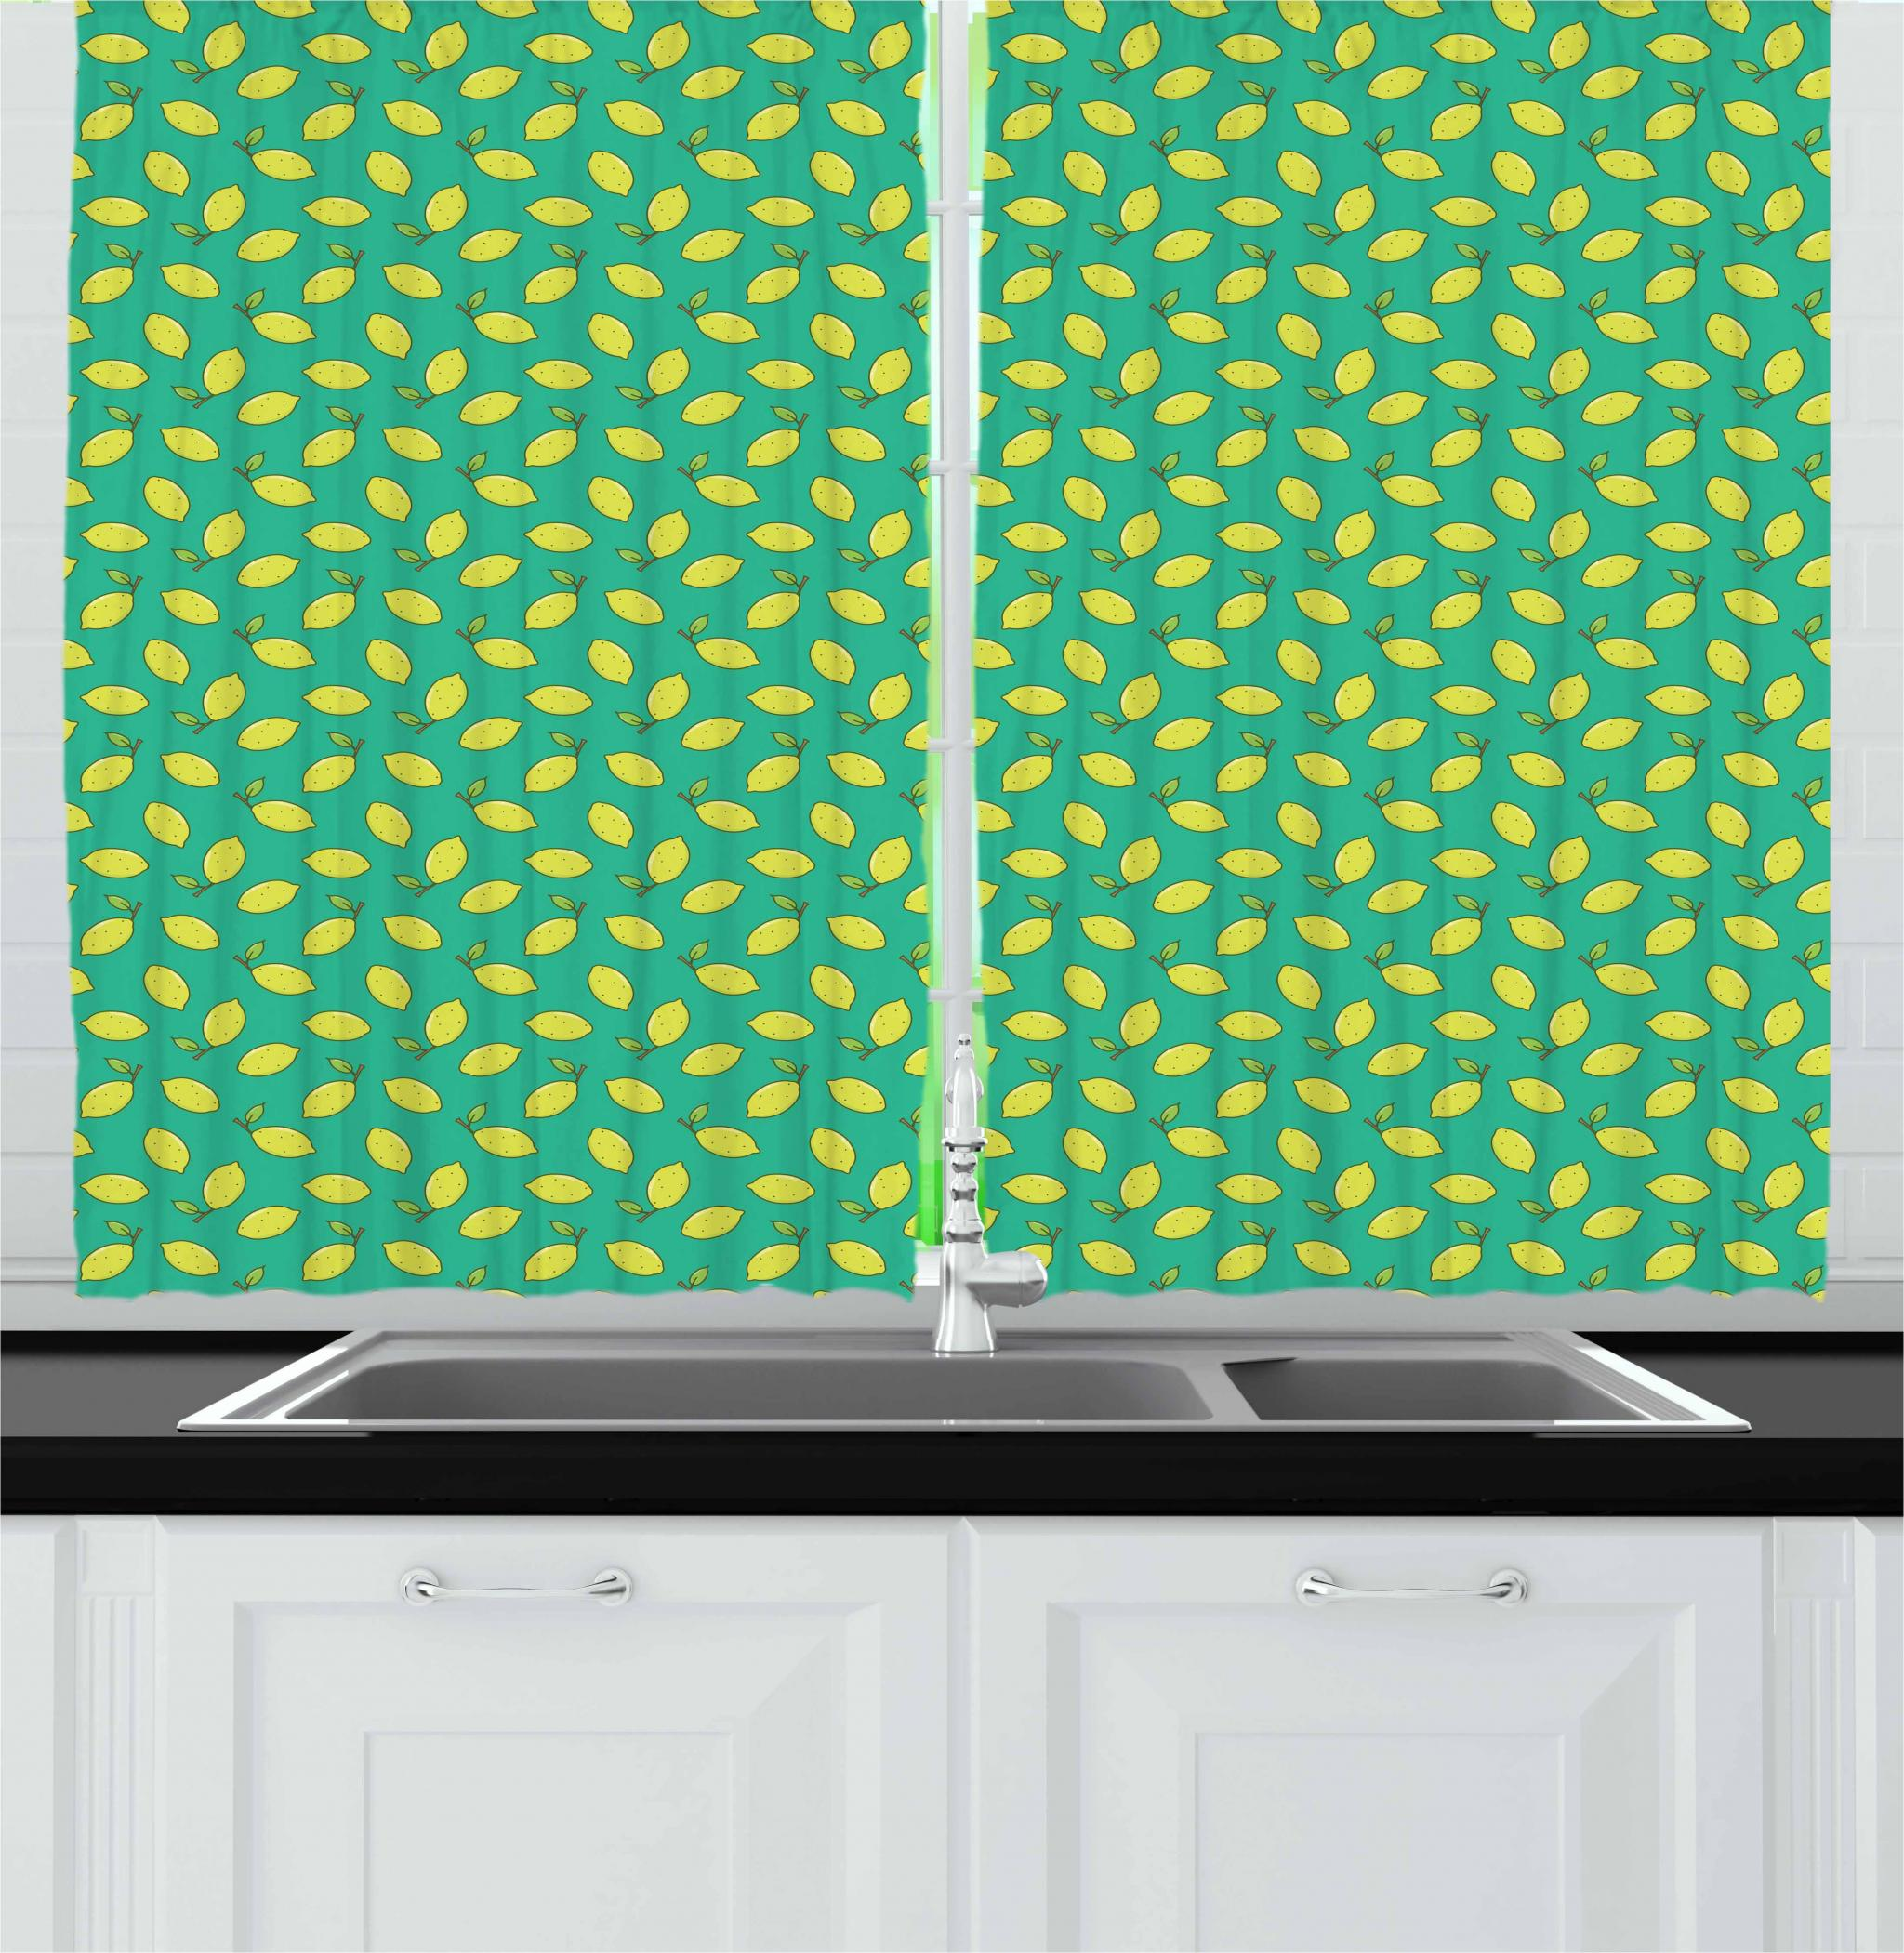 Lemon Green Curtains Vegan Curtains 2 Panels Set Yellow Lemon With Leaf Refreshing Citrus Organic Summer Garden Window Drapes For Living Room Bedroom 55w X 39l Inches